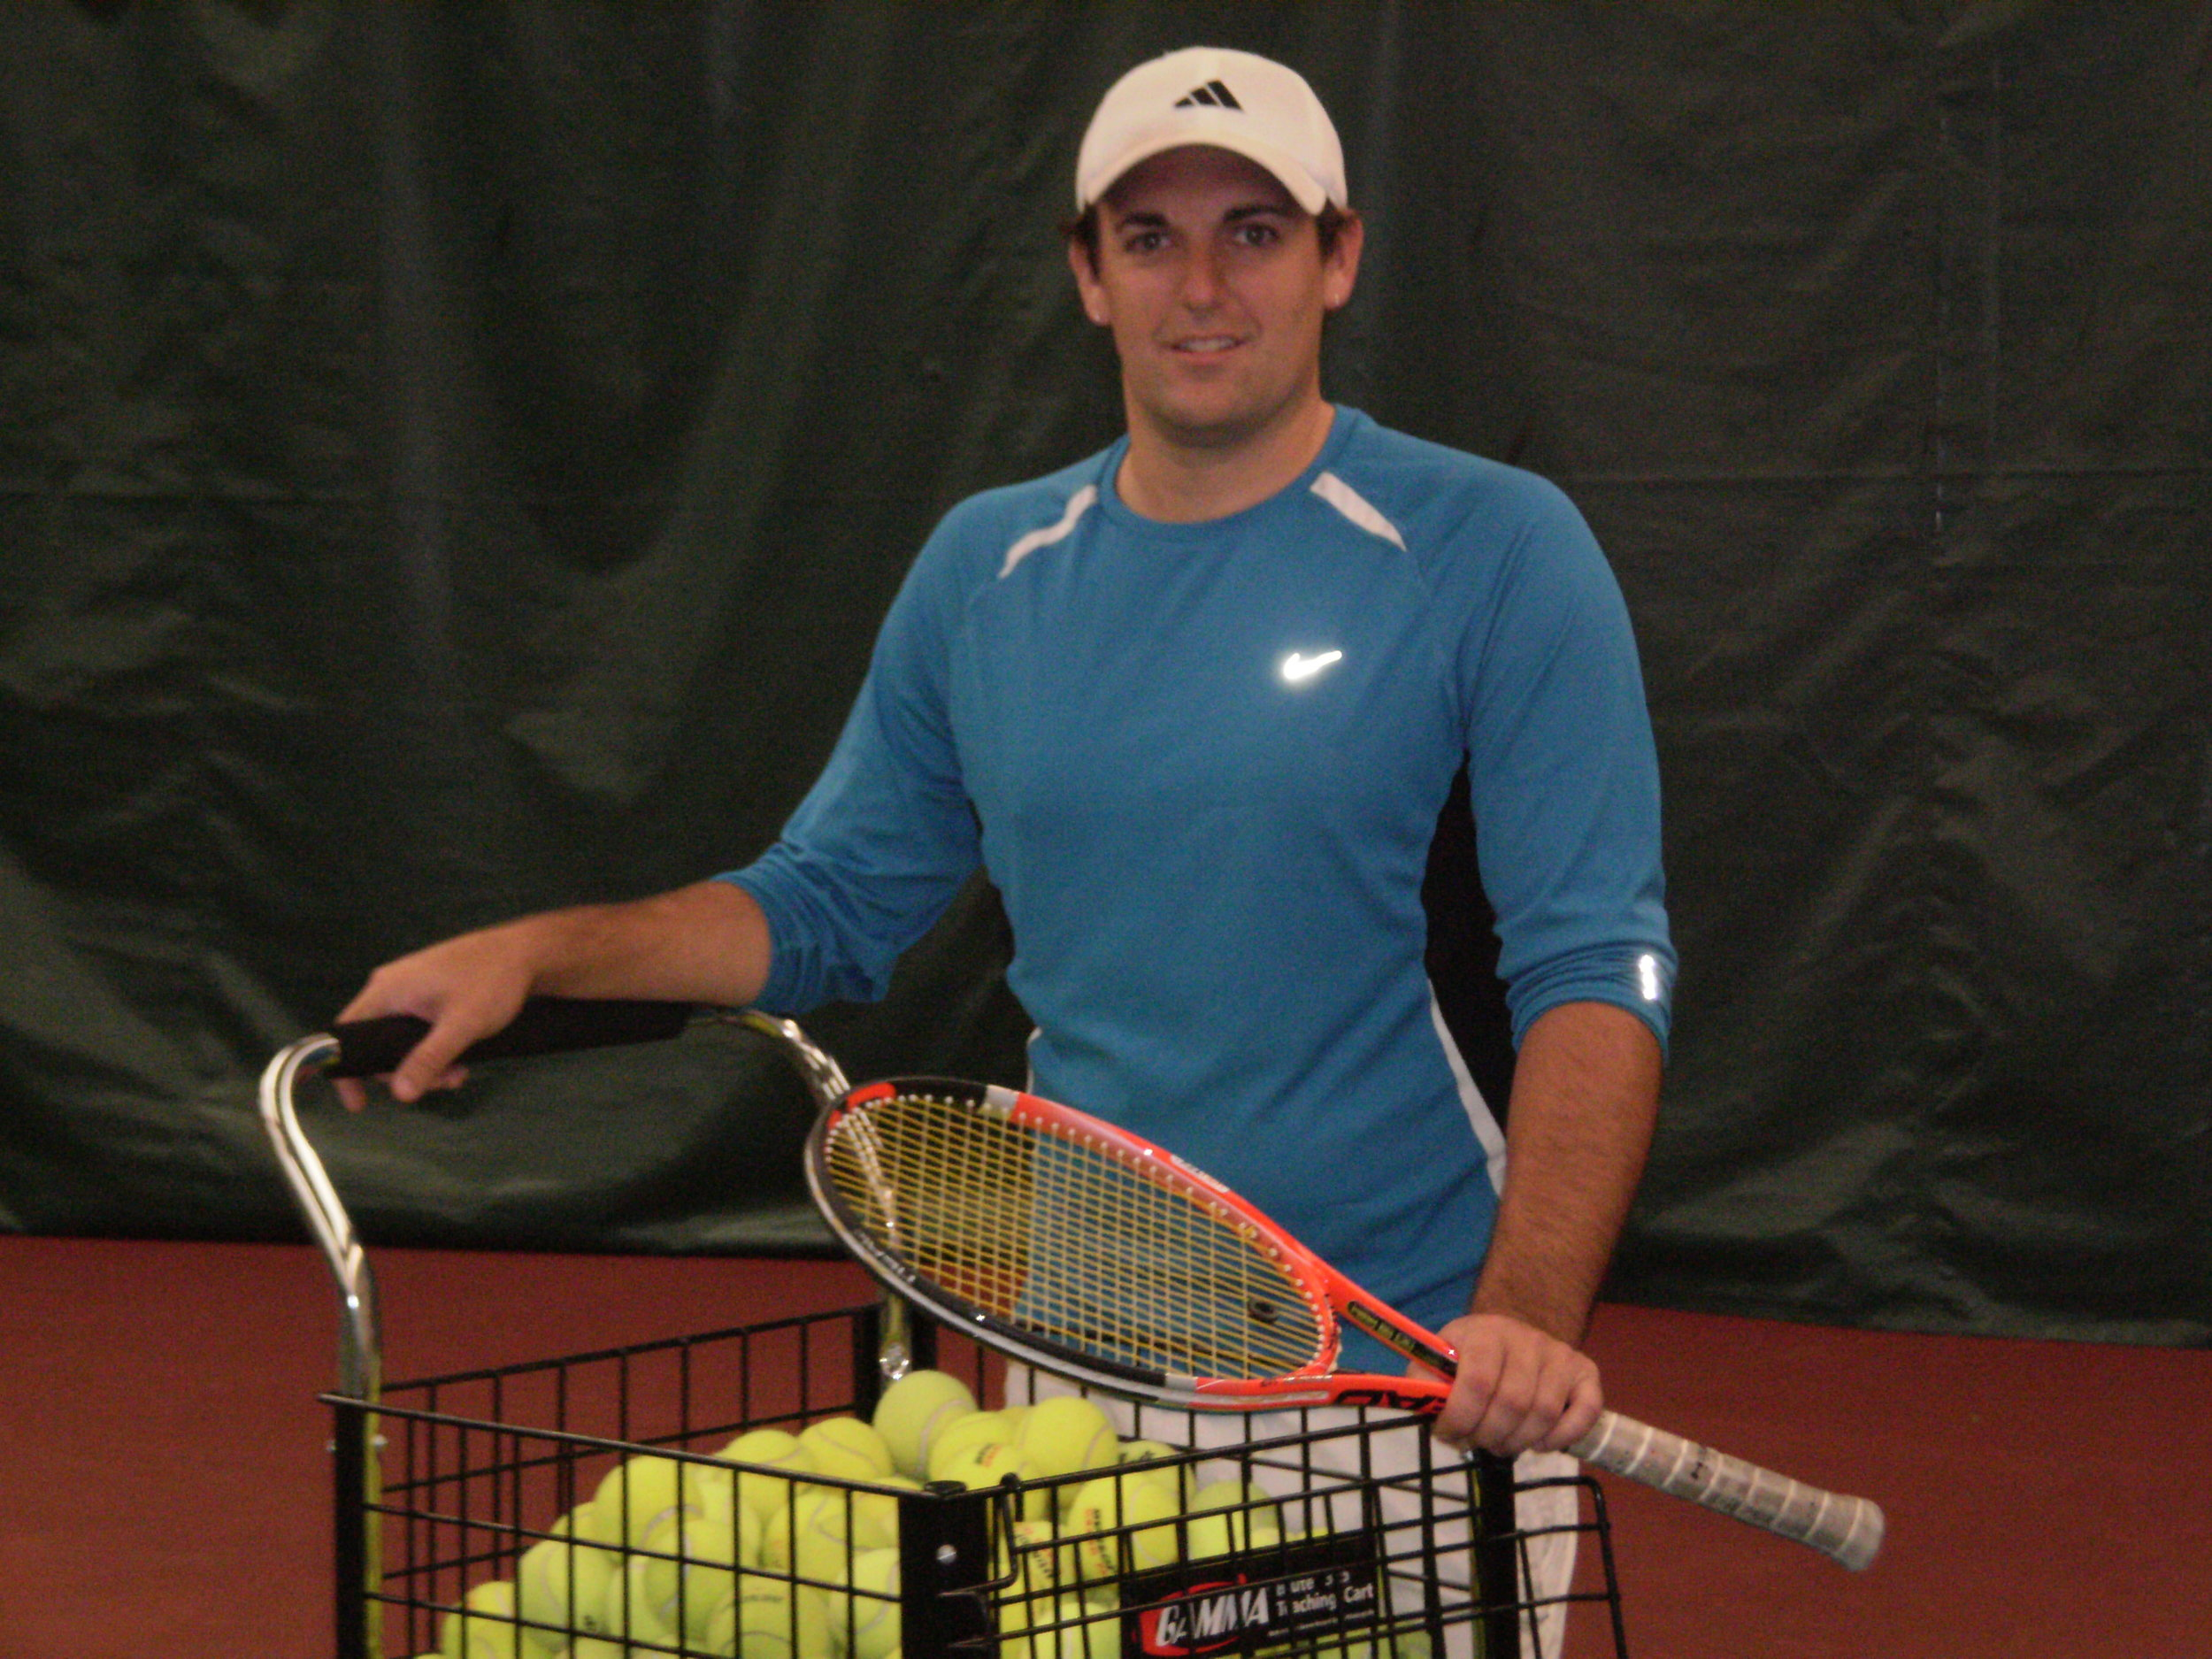 QUIN HOWE    Co-Director of Tennis    Junior Development Coordinator   Quin played Divison I college tennis for Central Connecticut State University. After college, he moved to Miami Florida and taught at the Nick Bollitieri Tennis Academy at Flamingo Park, as well as the North Shore Tennis Academy in North Miami Beach. While living in Florida, Quin coached nationally and internationally ranked juniors. After moving back to Connecticut in 2005, Quin has been teaching in the greater Hartford area for the Glastonbury Tennis Club. He's been a full-time pro at the club since 2007.